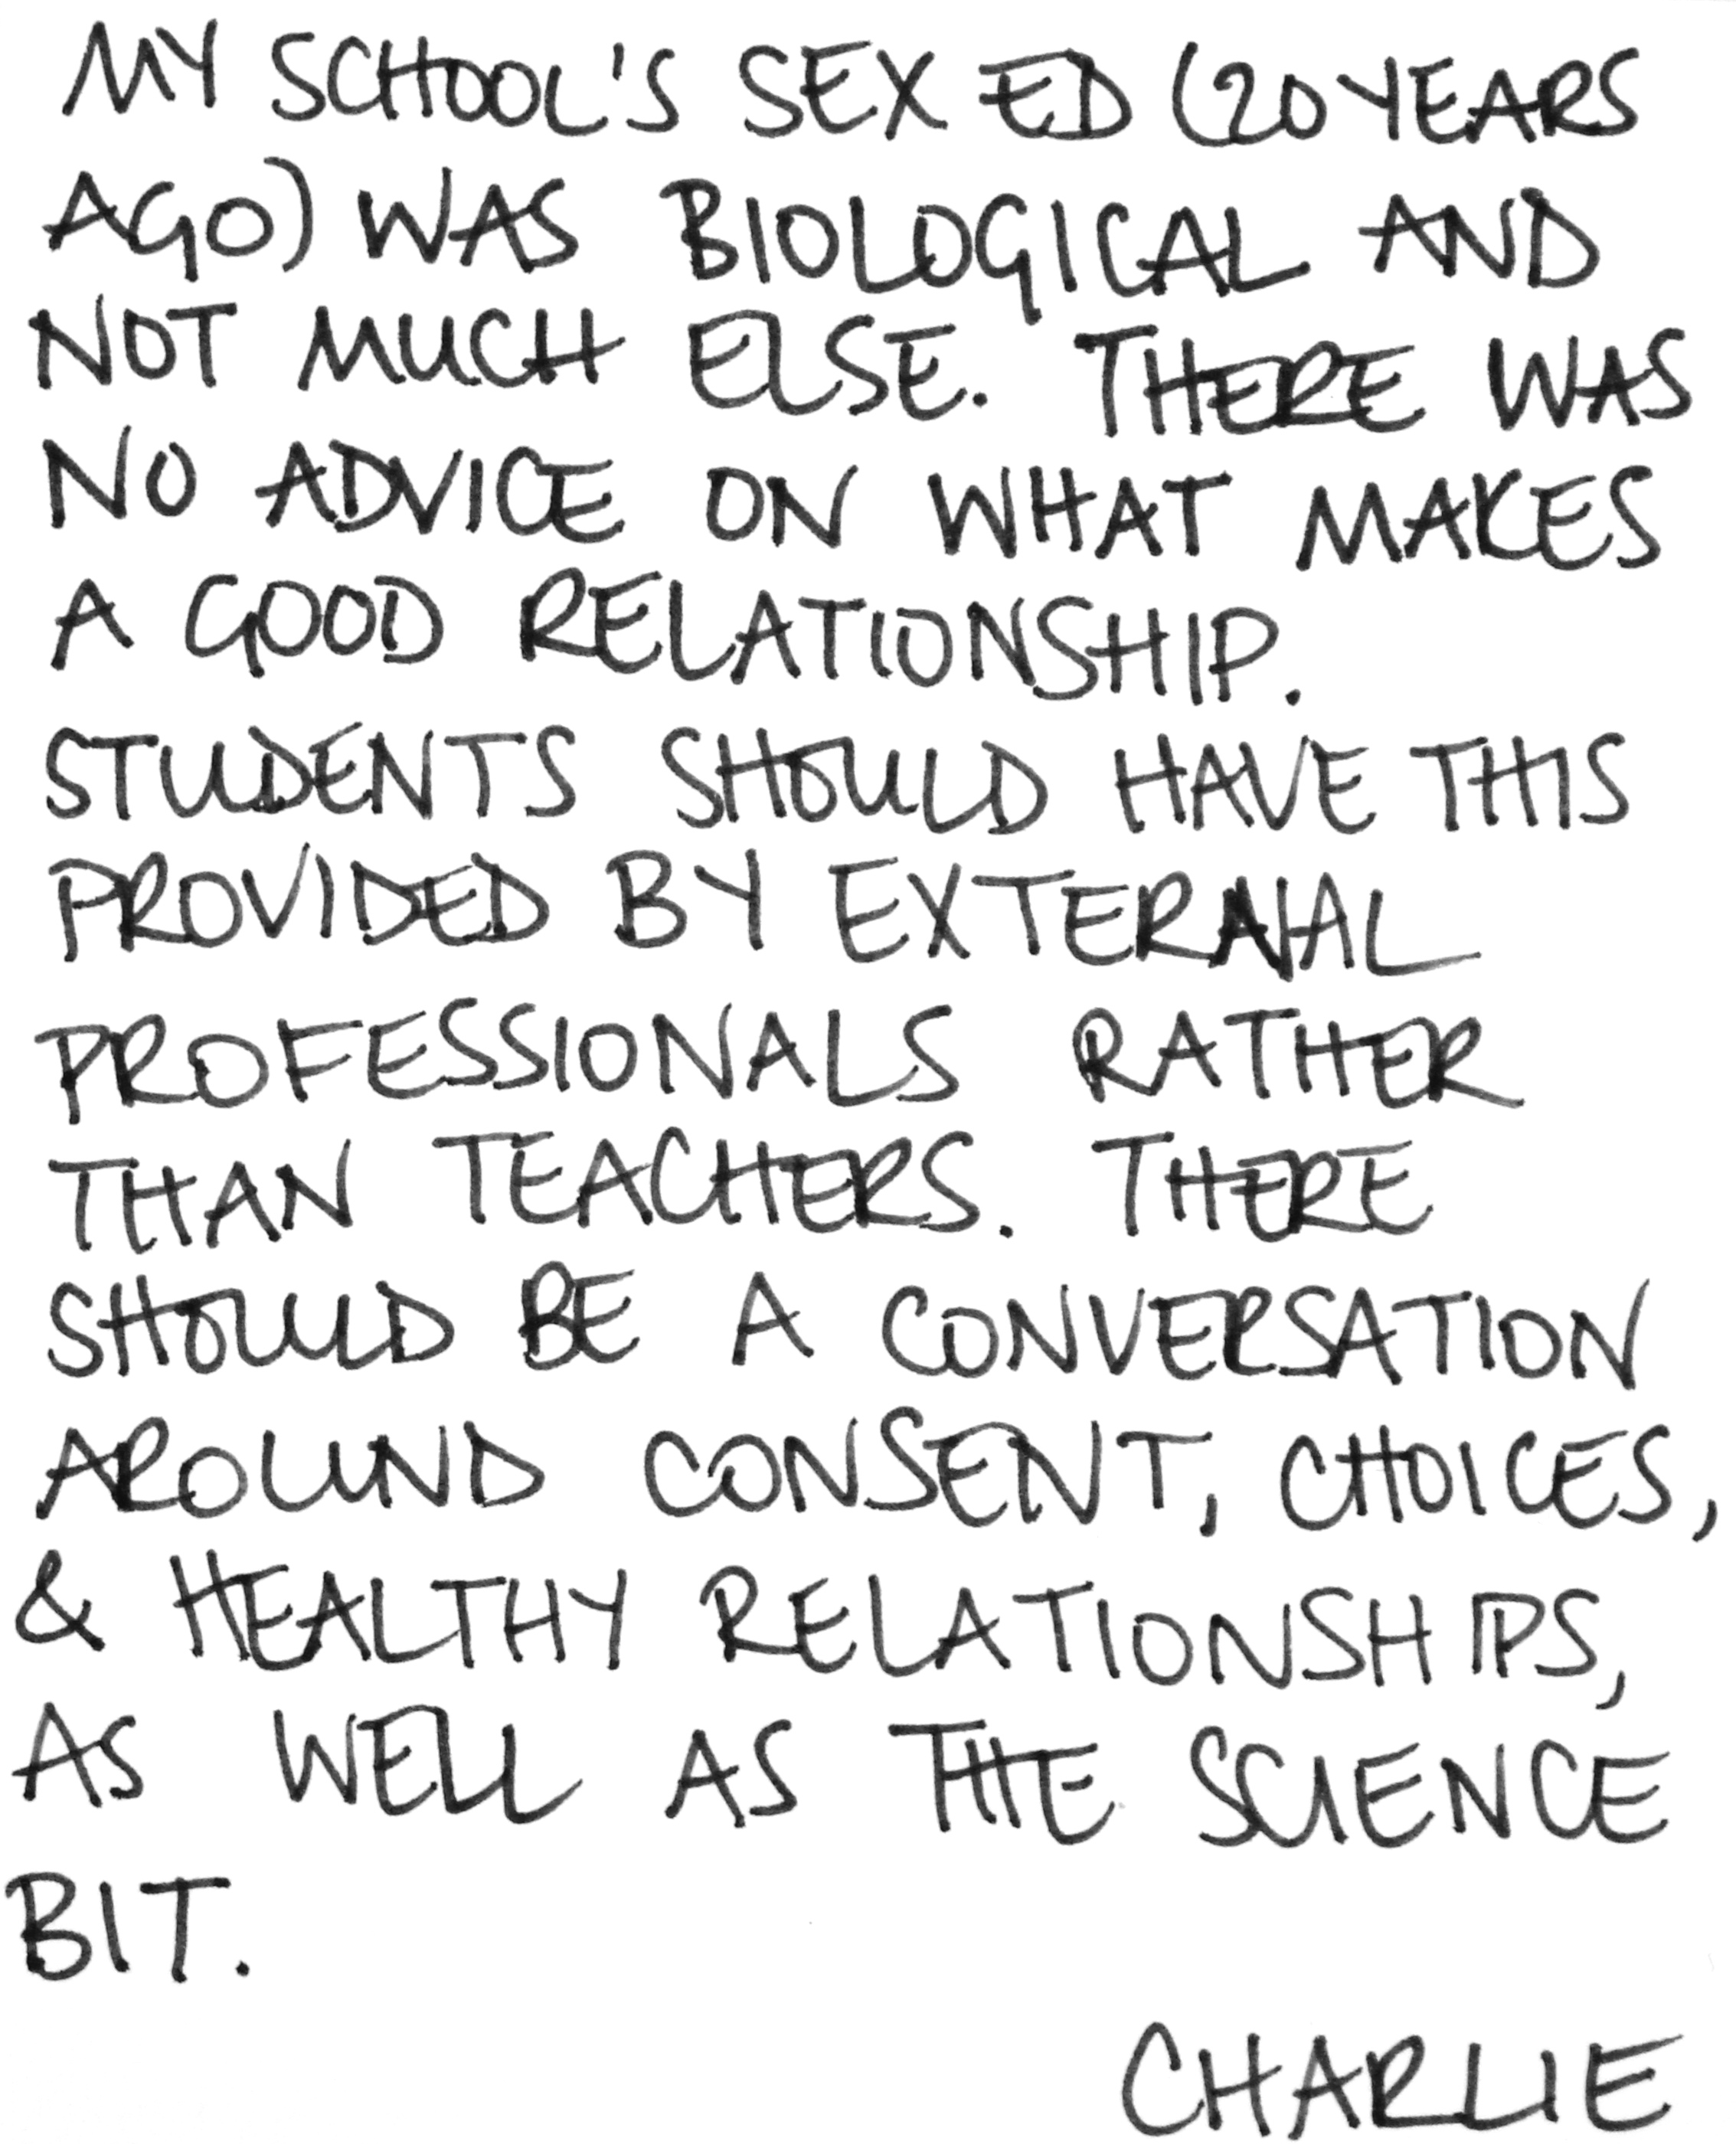 My school's sex ed (20 years ago) was biological and not much else. There was no advice on what makes a good relationship.  Students should have this provided by external professionals rather than teachers. There should be a conversation around consent, choices, & healthy relationships, as well as the science bit. -Charlie